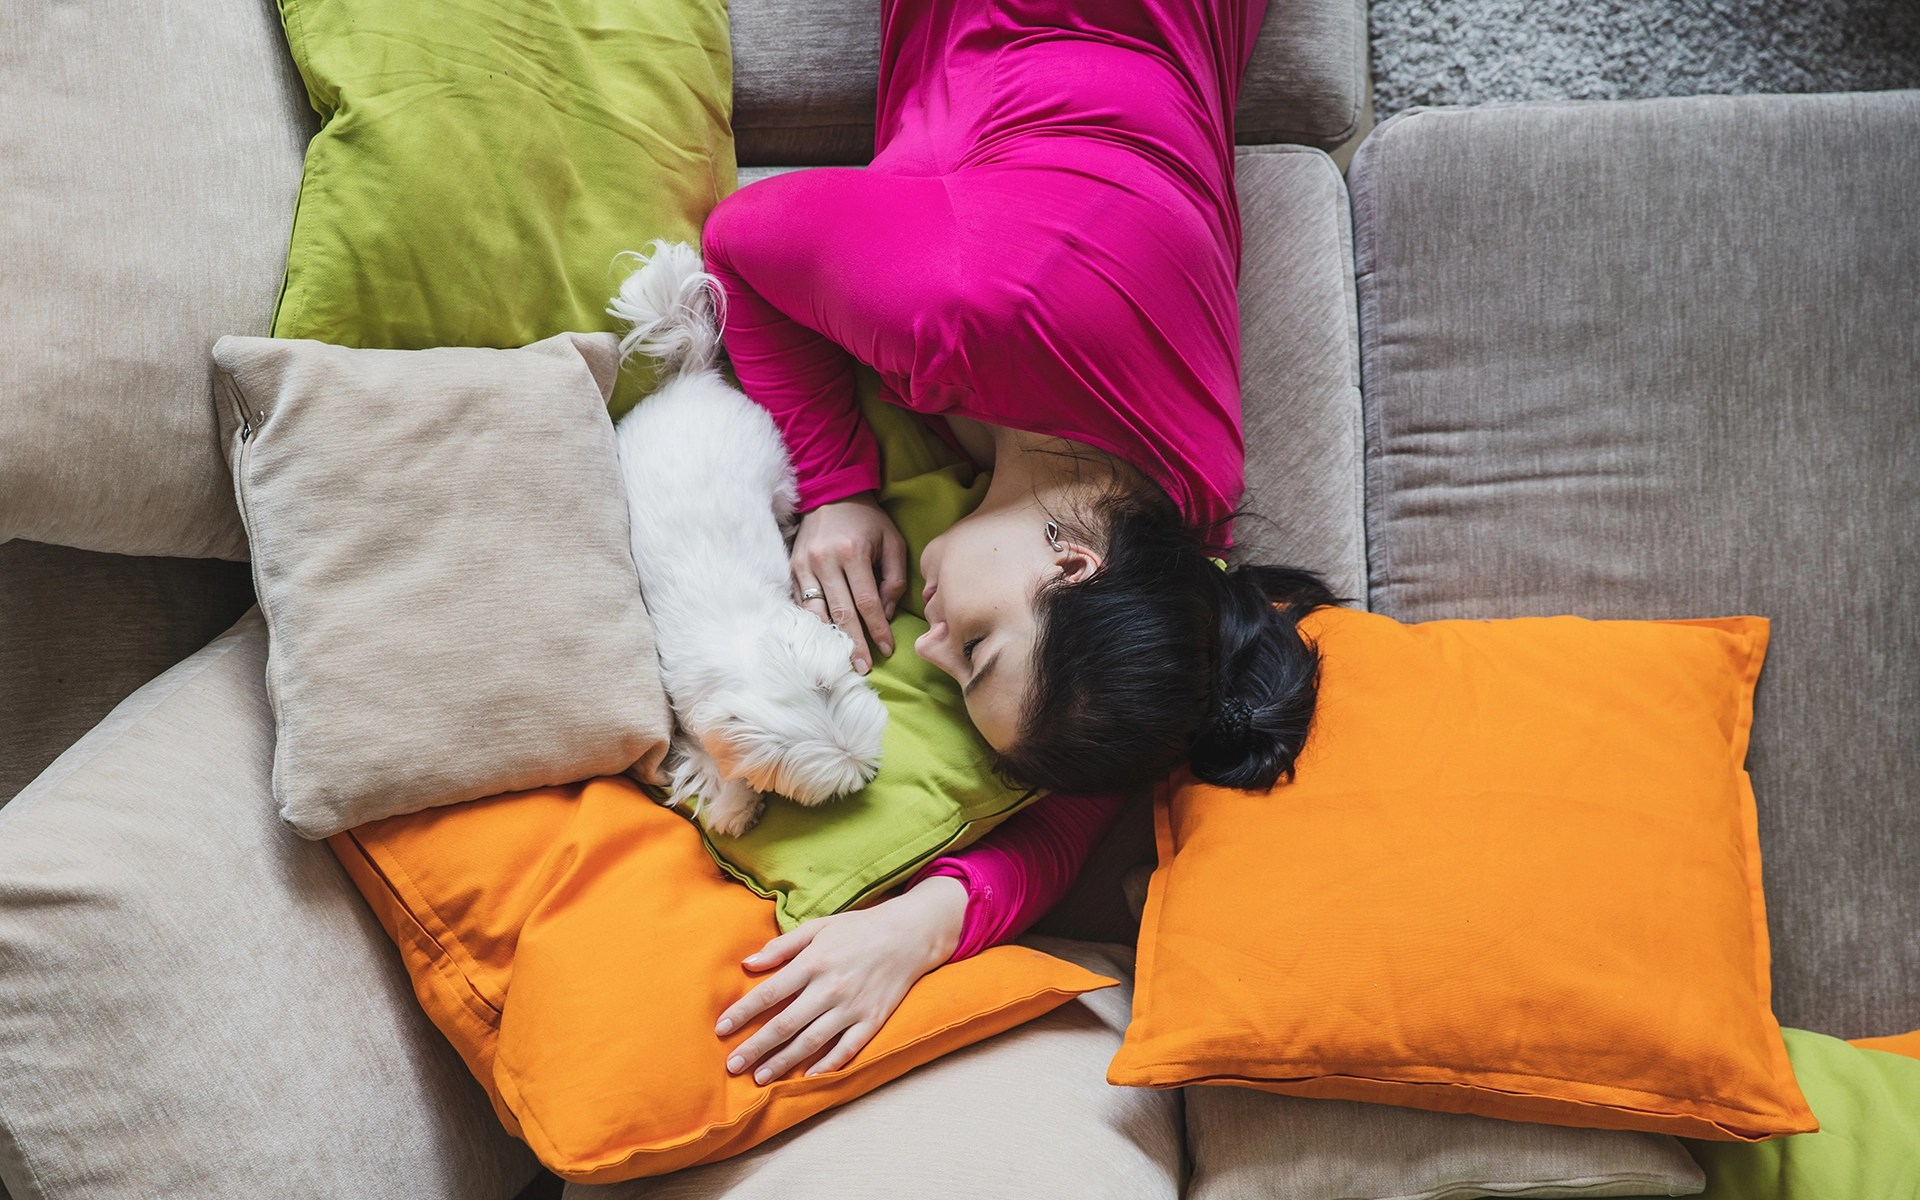 Woman is sleeping with her dog on the couch with colourful pillows. Photo taken from above.